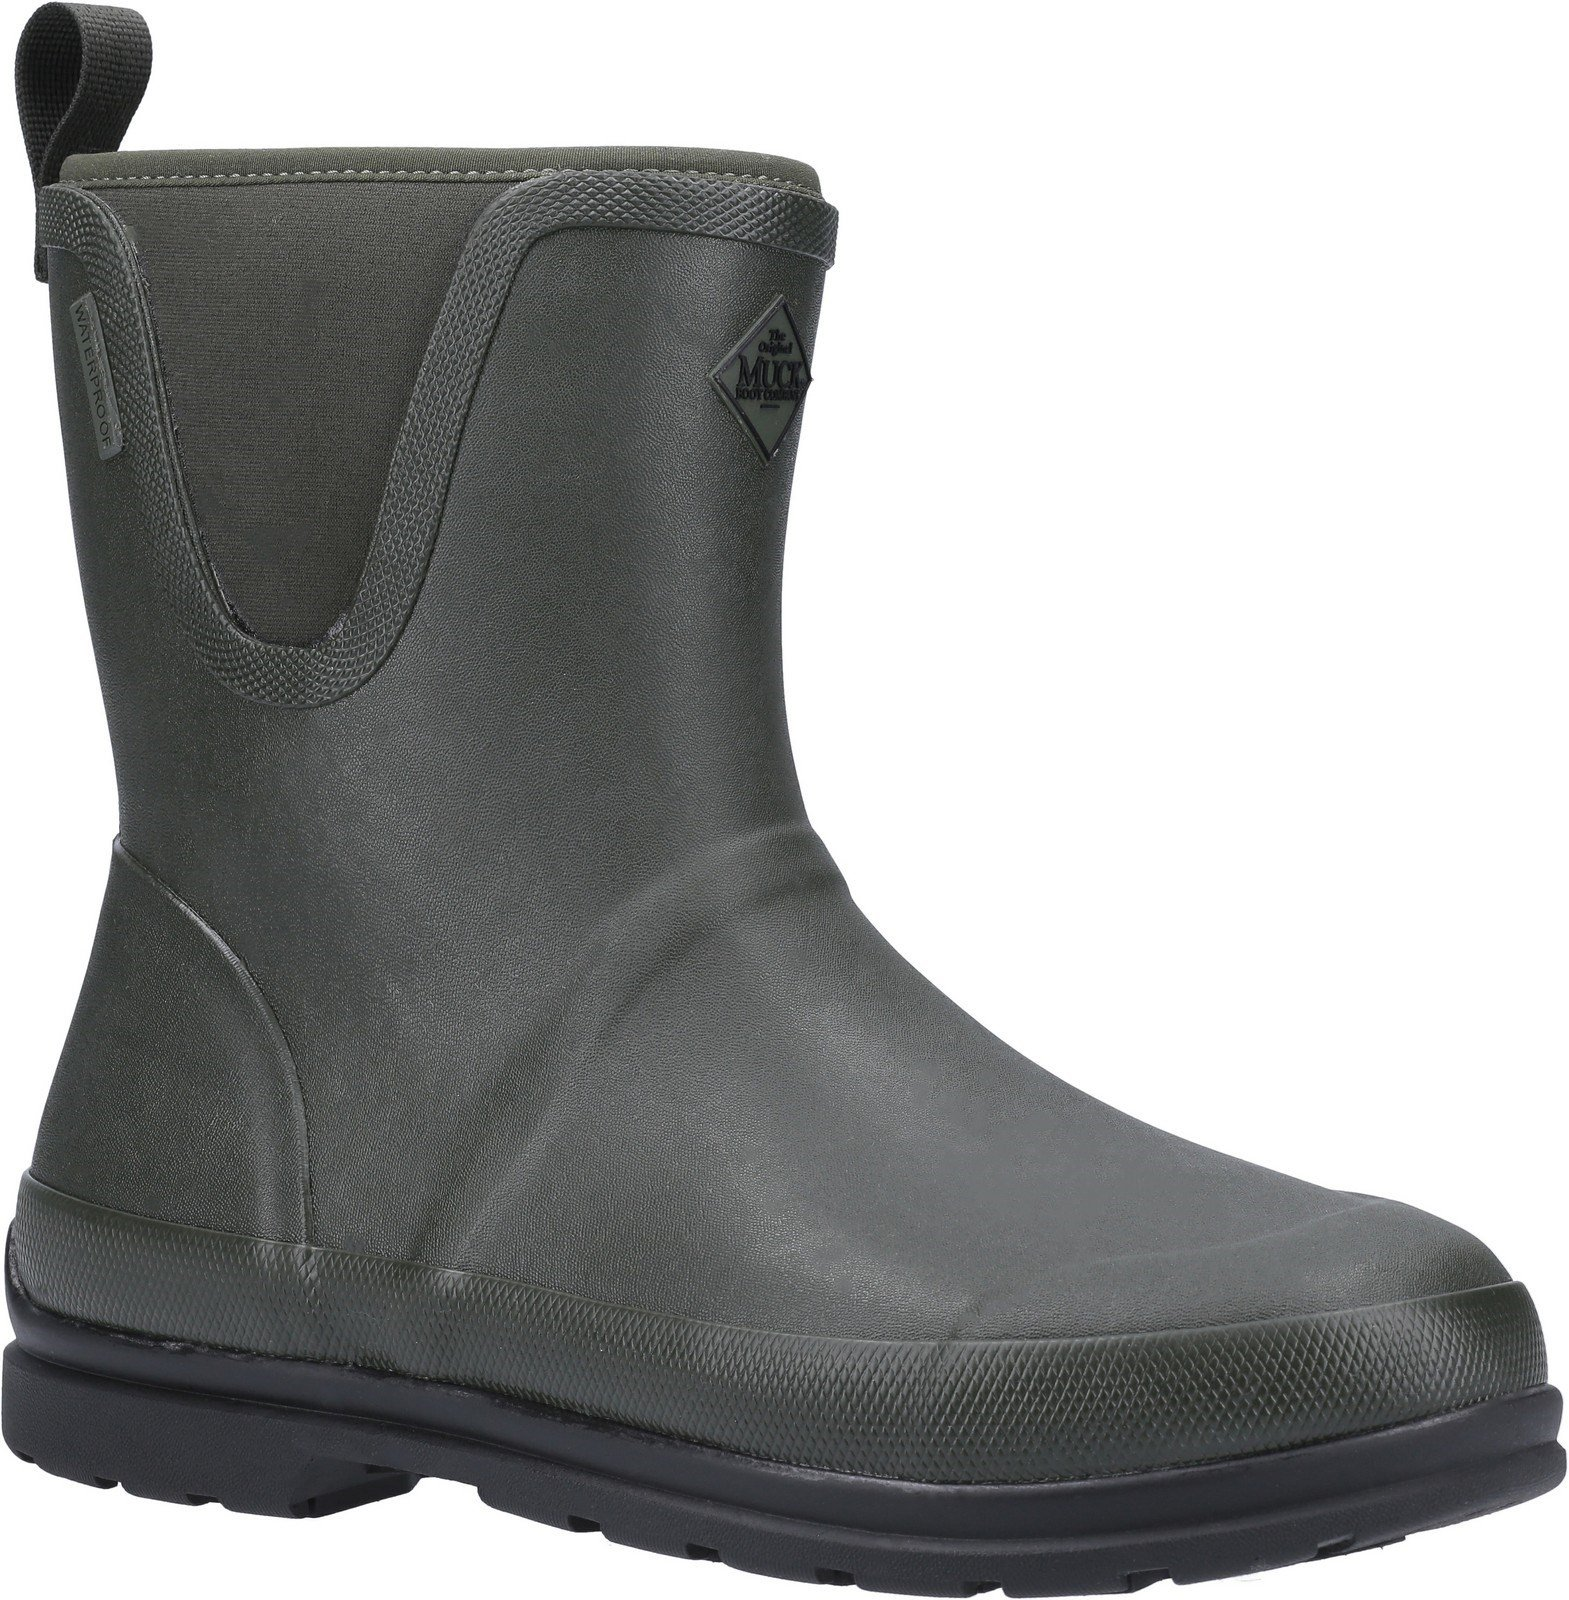 Muck Boots Unisex Originals Pull On Mid Boot Various Colours 30078 - Moss 4